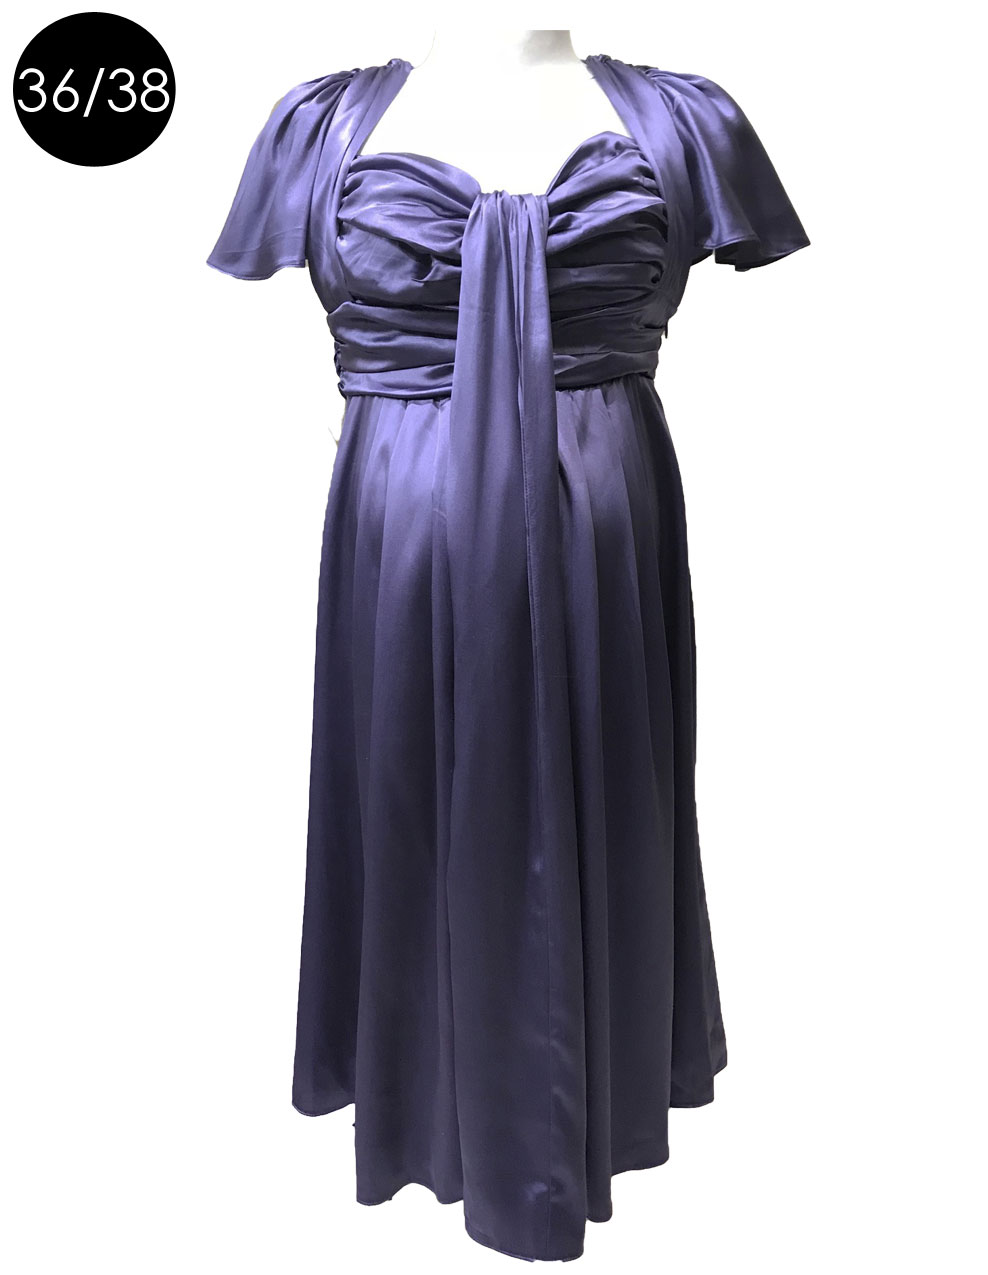 Robe Grossesse Cocktail Luxe En Soie Mauve Occasion Seraphine